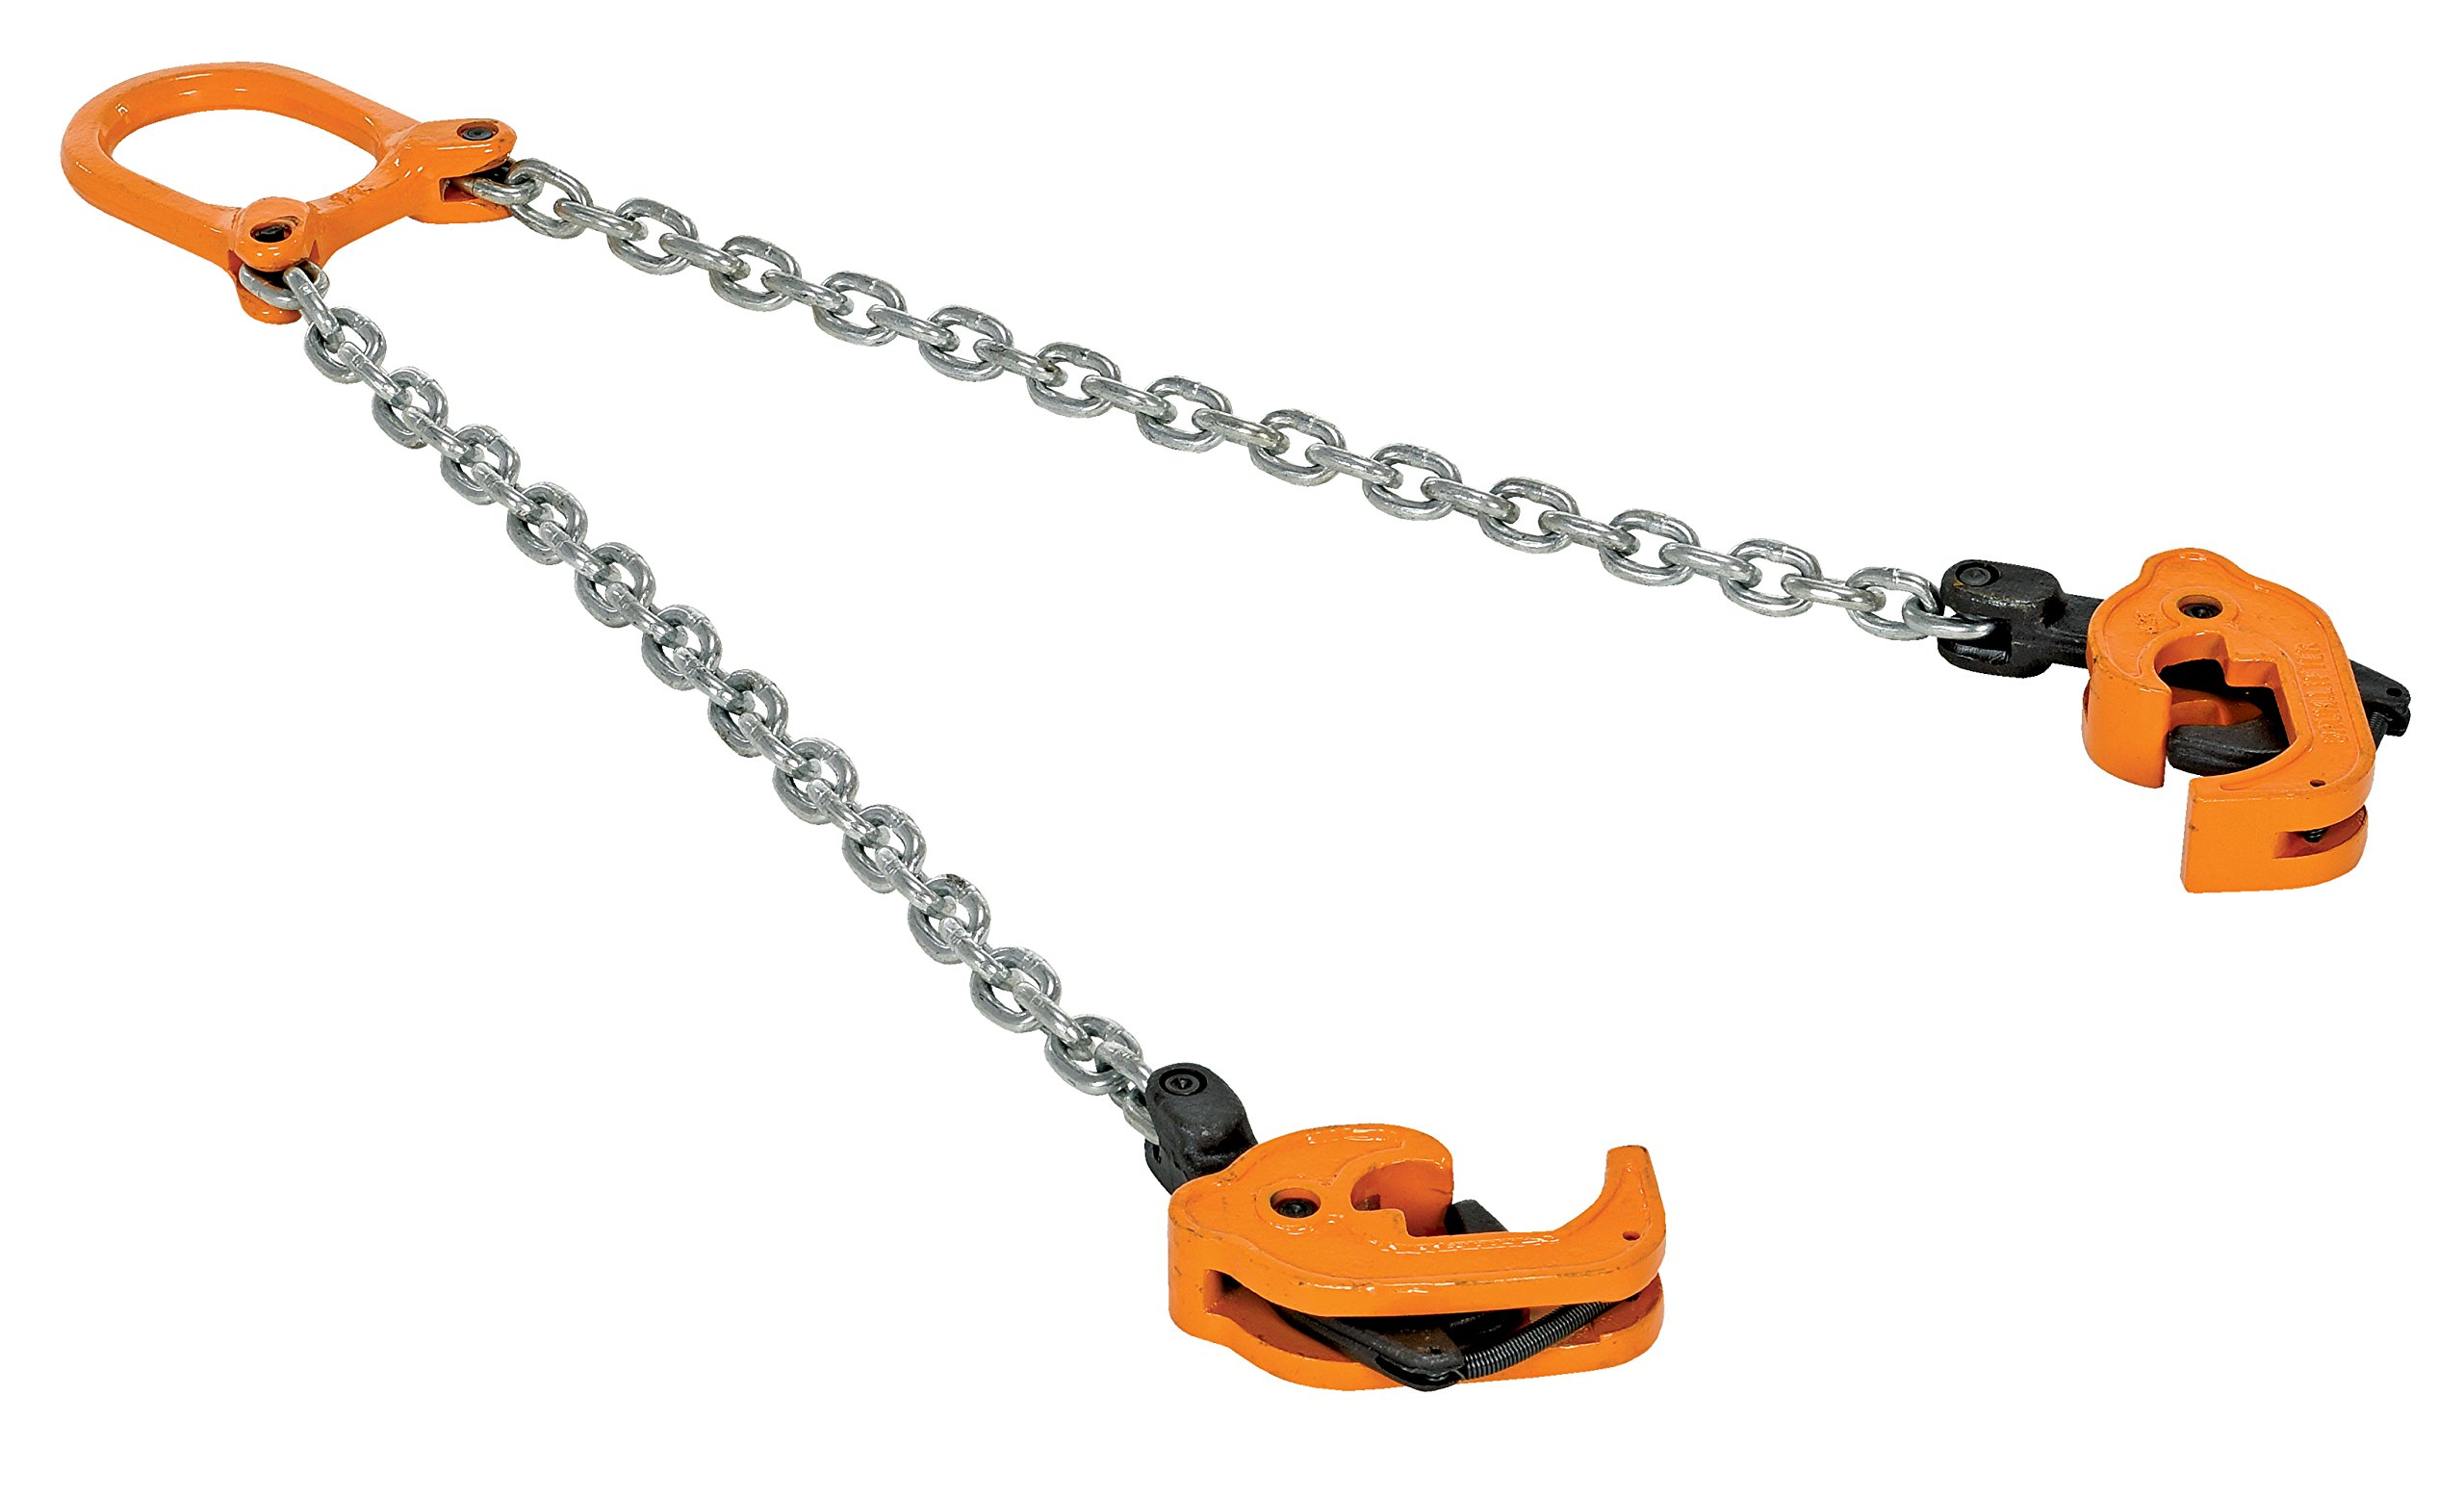 Vestil CDL-2000 Chain Drum Lifter, 2000 lbs Capacity